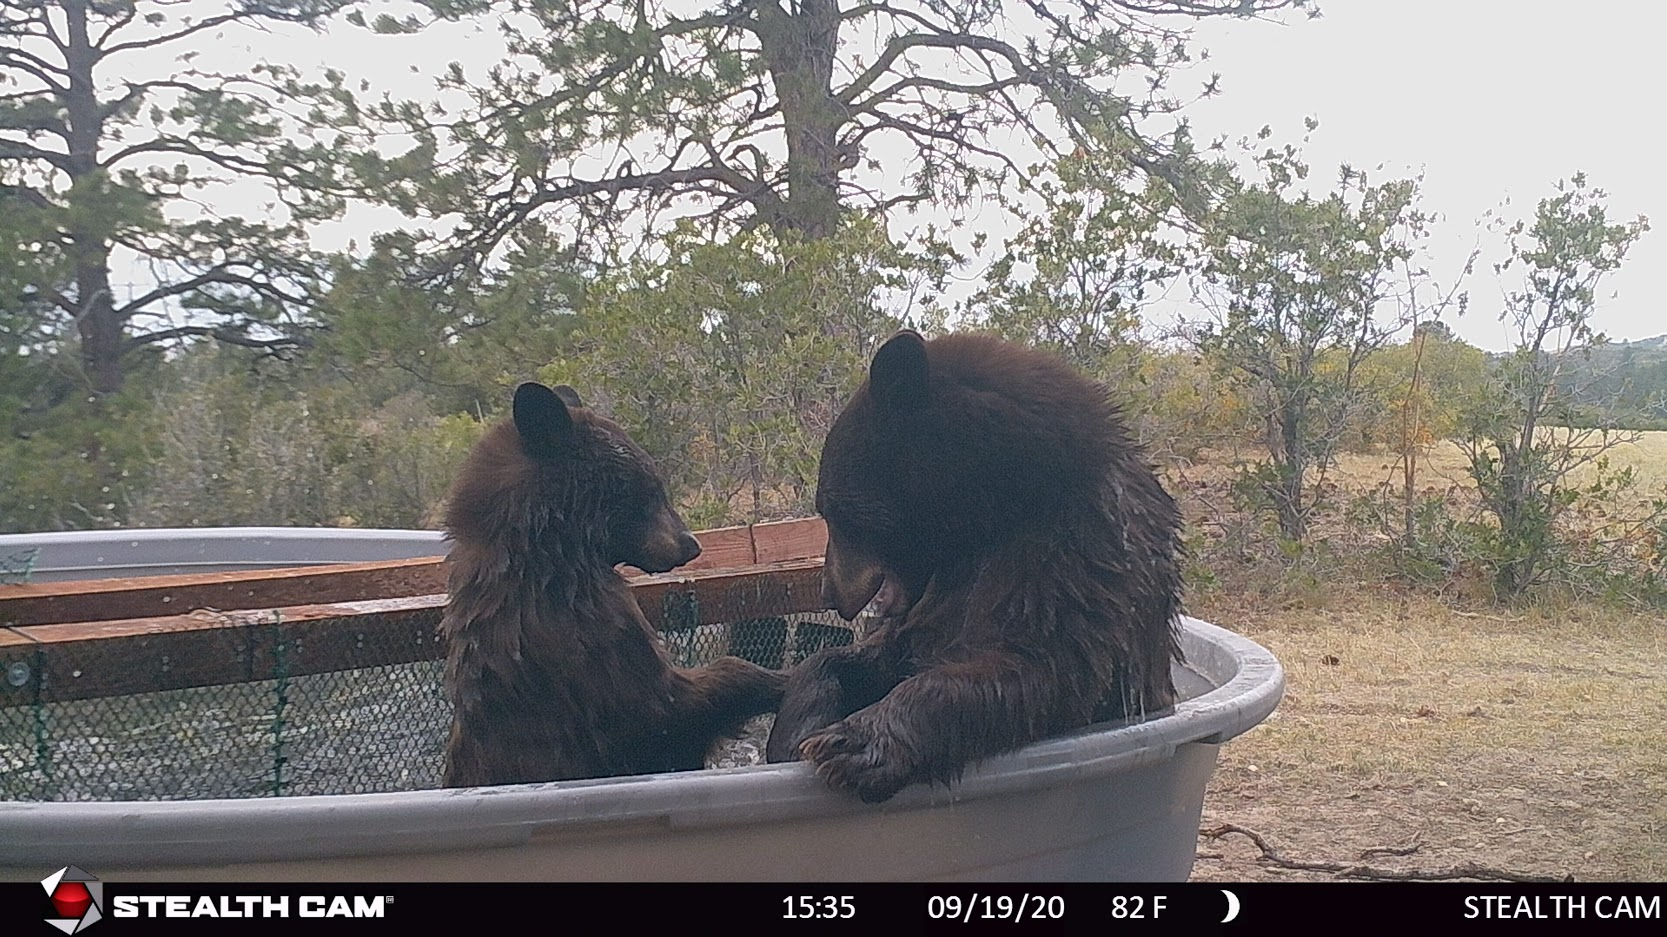 mama and baby bear in water tank